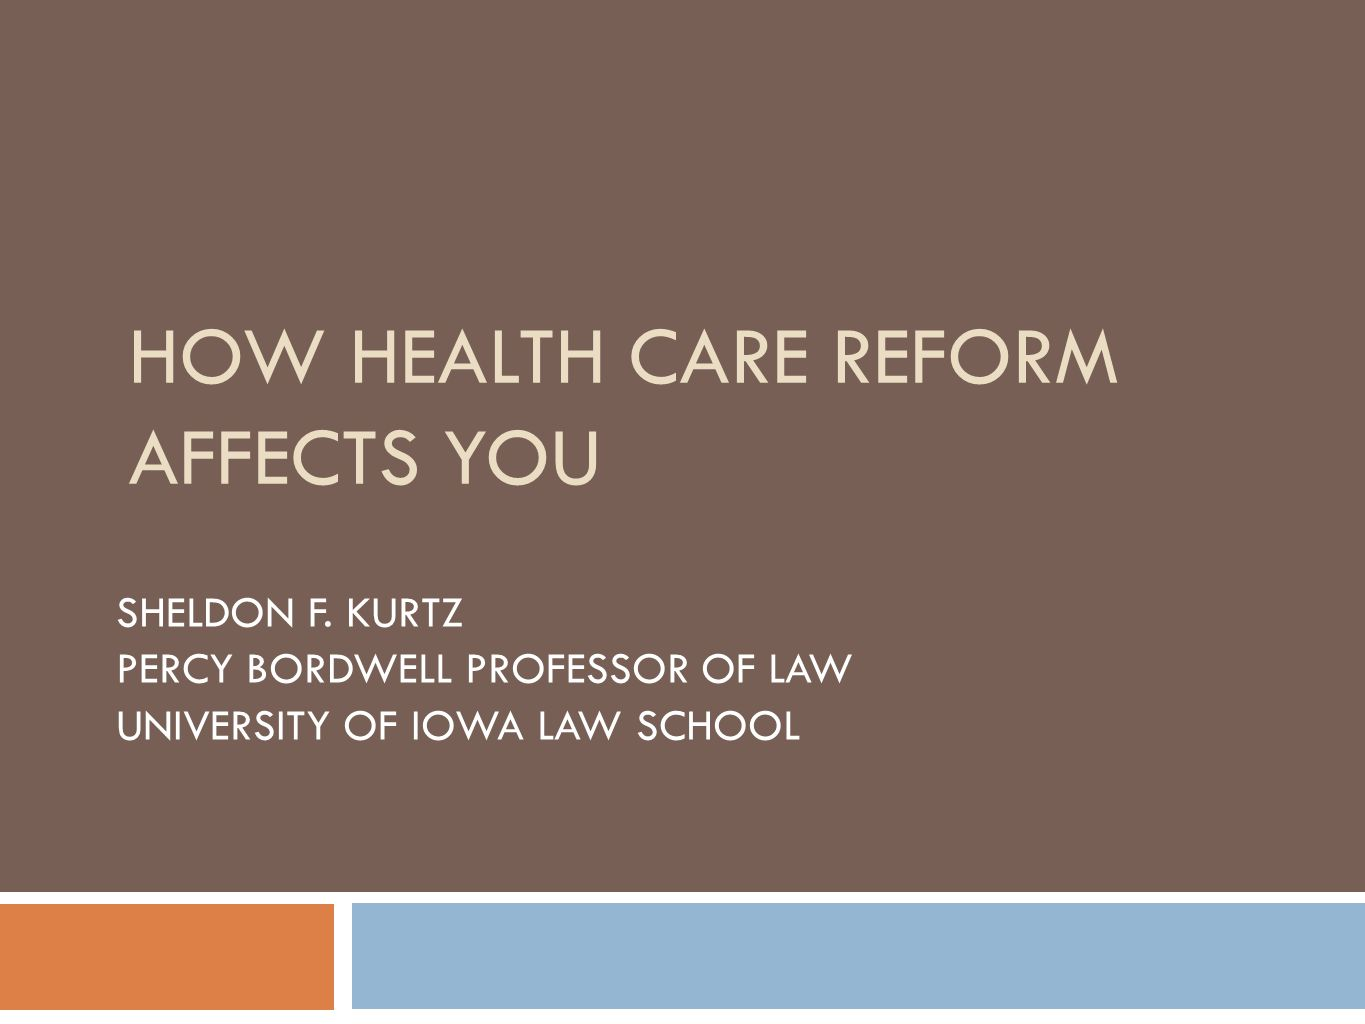 HOW HEALTH CARE REFORM AFFECTS YOU SHELDON F.